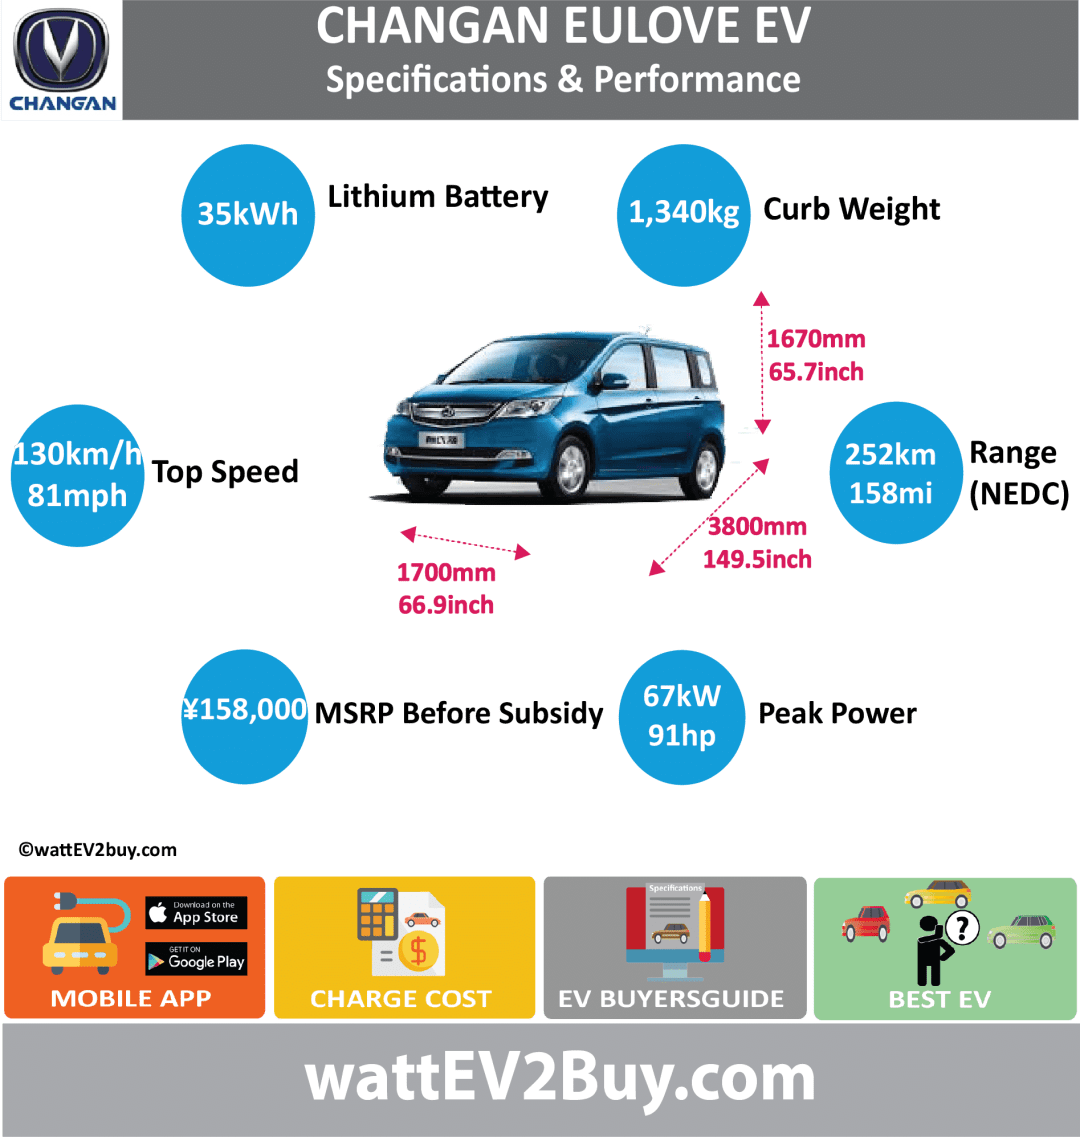 CHANGAN EULOVE EV specs wattev2Buy.com 2017 Battery Chemistry Battery Capacity kWh 35 Battery Nominal rating kWh Voltage V 3.7 Amps Ah 104 Cells Modules Weight (kg) 340 Cell Type Cooling Cycles Depth of Discharge (DOD) Energy Density Wh/kg Battery Manufacturer Star Constant Power Co., Ltd. Battery Warranty - years Battery Warranty - km Battery Electric Range - at constant 38mph Battery Electric Range - at constant 60km/h Battery Electric Range - NEDC Mi 158 Battery Electric Range - NEDC km 252 Electric Top Speed - mph 81 Electric Top Speed - km/h 130 Acceleration 0 - 100km/h sec Acceleration 0 - 50km/h sec Onboard Charger kW LV 1 Charge kW LV 1 Charge Time (Hours) LV 2 Charge kW LV 2 Charge Time (Hours) LV 3 CCS/Combo kW LV 3 Charge Time (min to 80%) Charge Connector MPGe Combined - miles MPGe Combined - km MPGe City - miles MPGe City - km MPGe Highway - miles MPGe Highway - km Max Power - hp (Electric Max) 91 Max Power - kW (Electric Max) 67 Max Torque - lb.ft (Electric Max) Max Torque - N.m (Electric Max) 240 Drivetrain Electric Motor Manufacturer Chong drive (Shanghai) New Energy Technology Co., Ltd Electric Motor - Rear Max Power - hp (Rear) Max Power - kW (Rear) Max Torque - lb.ft (Rear) Max Torque - N.m (Rear) Electric Motor - Front Max Power - hp (Front) Max Power - kW (Front) Max Torque - lb.ft (Front) Max Torque - N.m (Front) Motor Type Electric Motor Output kW 40 Transmission Energy Consumption kWh/100km CHINA MSRP (before incentives & destination) ¥158,000.00 MSRP after incentives Vehicle Doors Seating 5 Dimensions GVWR (kg) 1715 Curb Weight (kg) 1340 Payload Capacity (lbs) Towing Capacity (lbs) Wheelbase (mm) 2505 Ground Clearance (mm) Lenght (mm) 3800 Width (mm) 1700 Height (mm) 1670 Wheelbase (inc) 98.5 Lenght (inc) 149.5 Width (inc) 66.9 Height (inc) 65.7 Other Market Class Incentives Safety Level Unveiled Unique